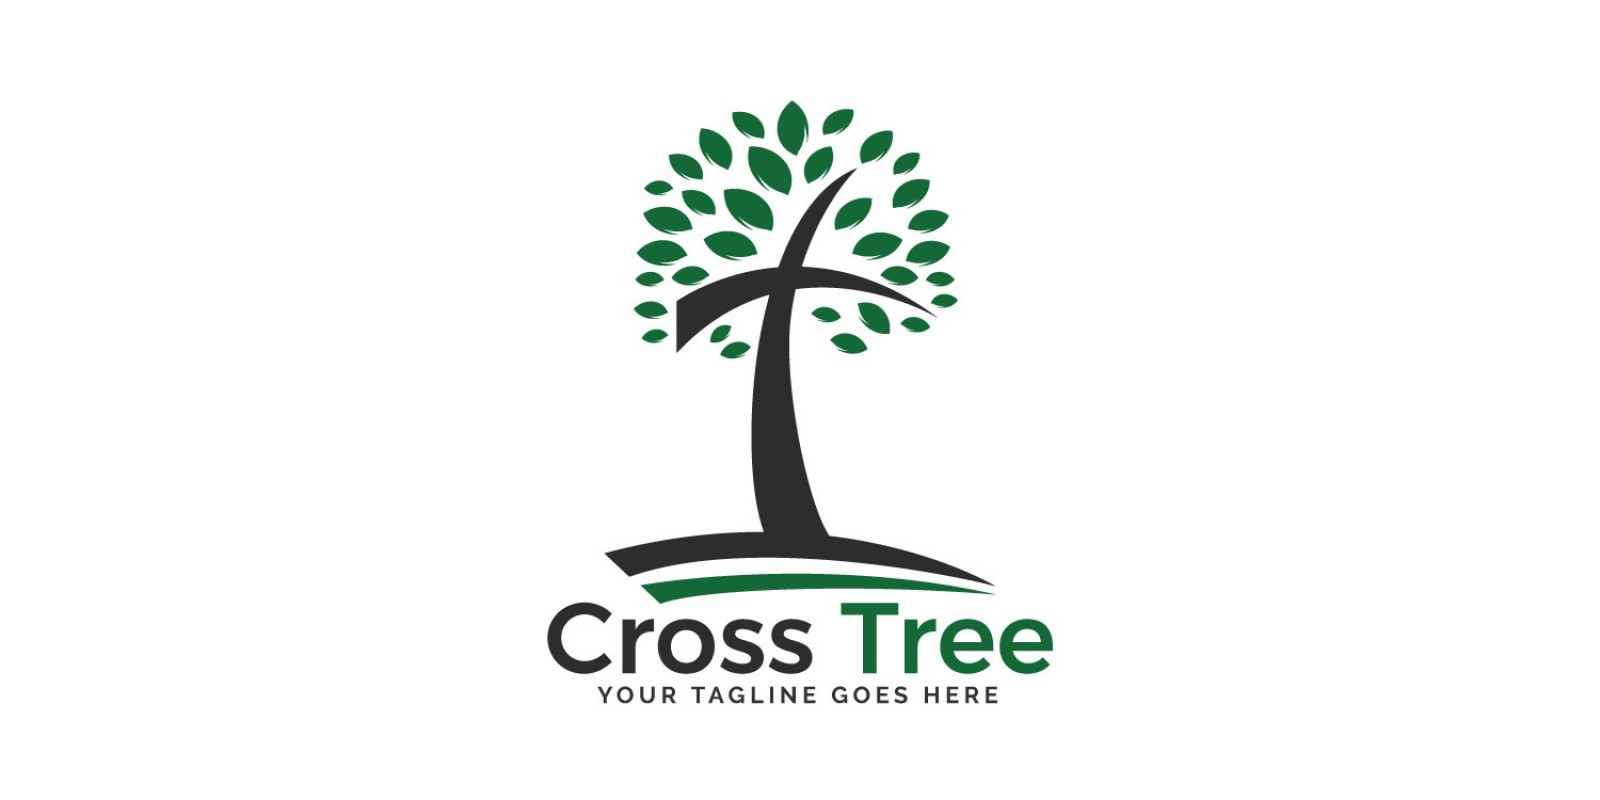 Cross tree logo Design